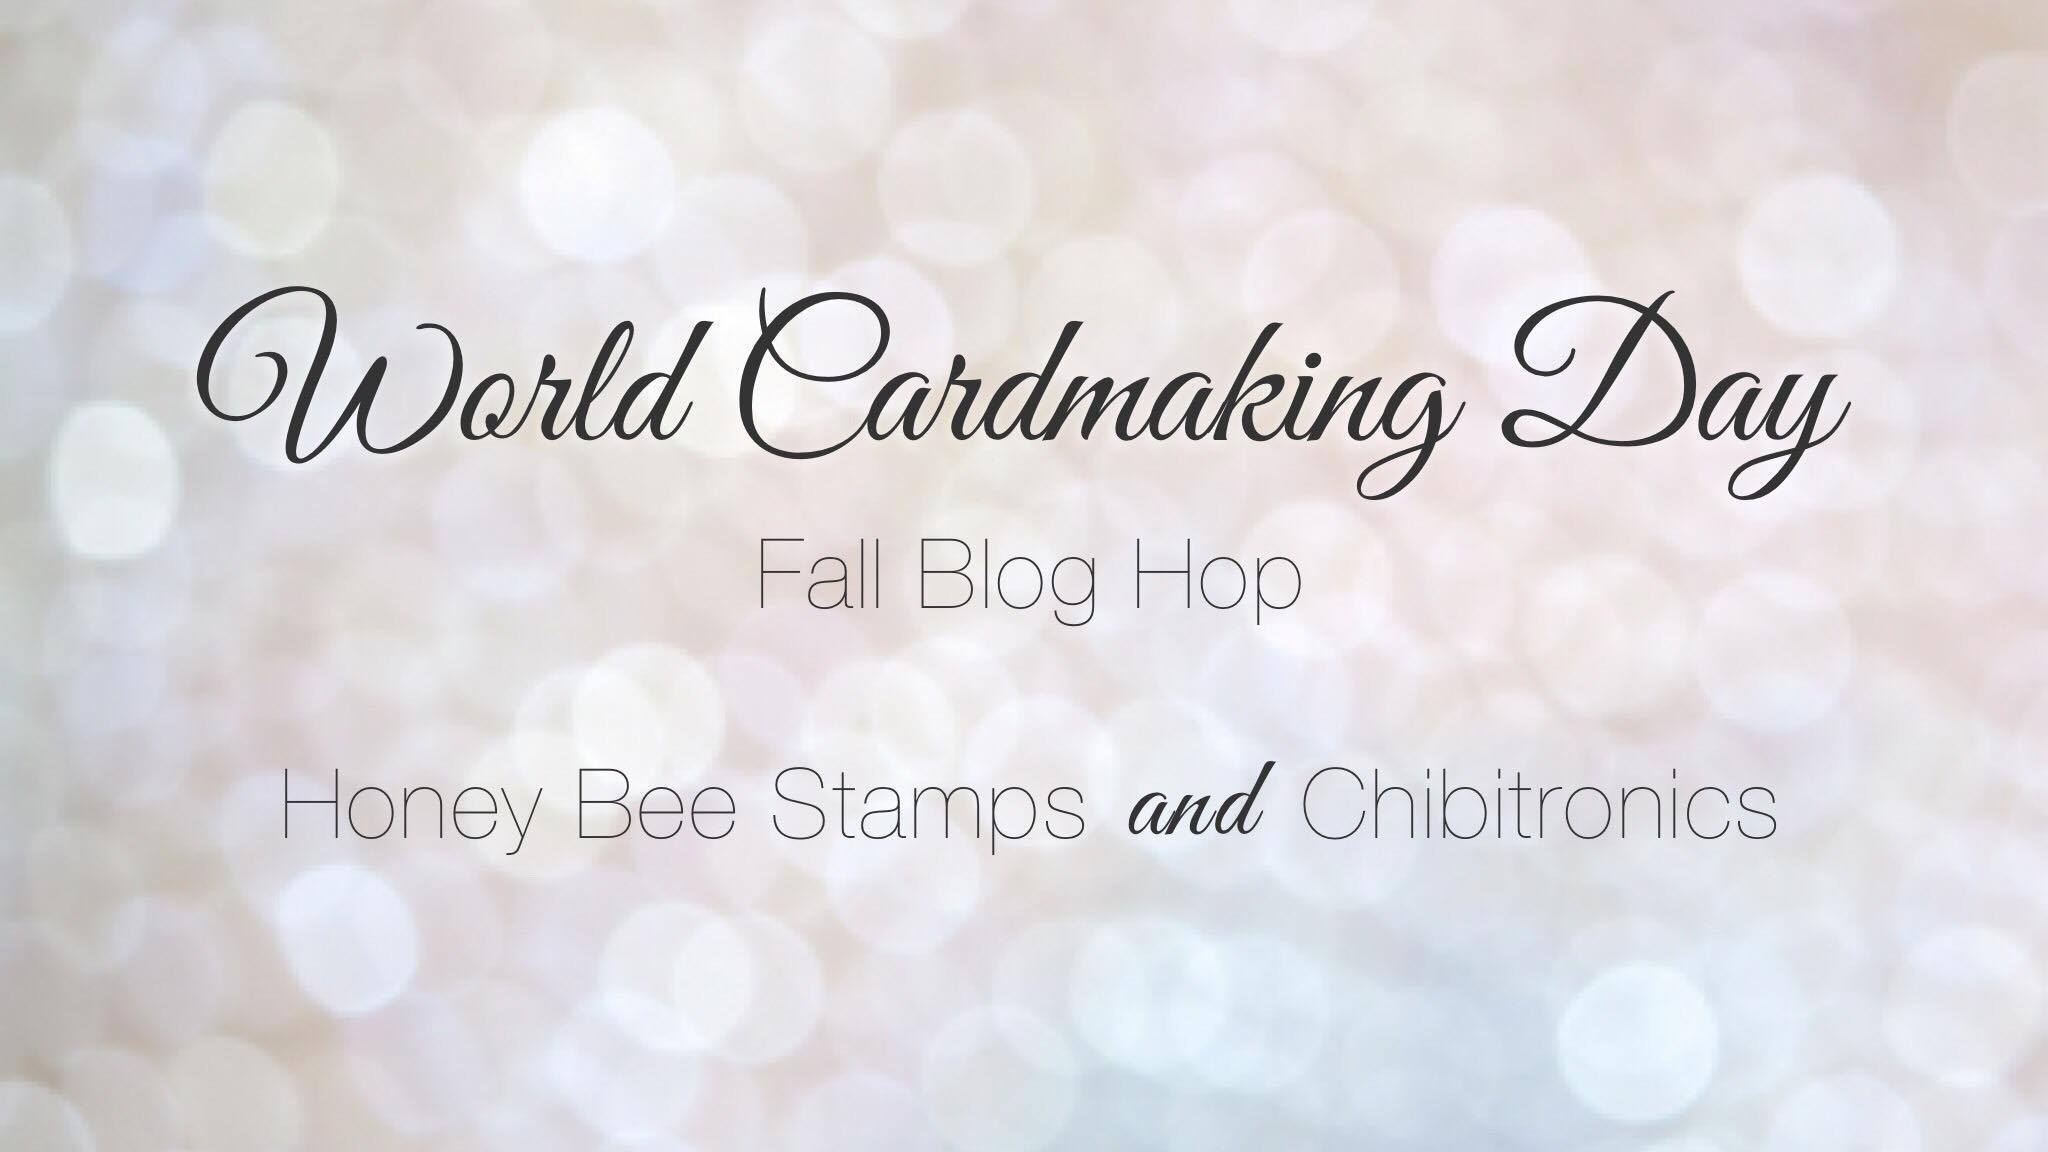 World CardMaking Day Blog Hop with Honeybee Stamps